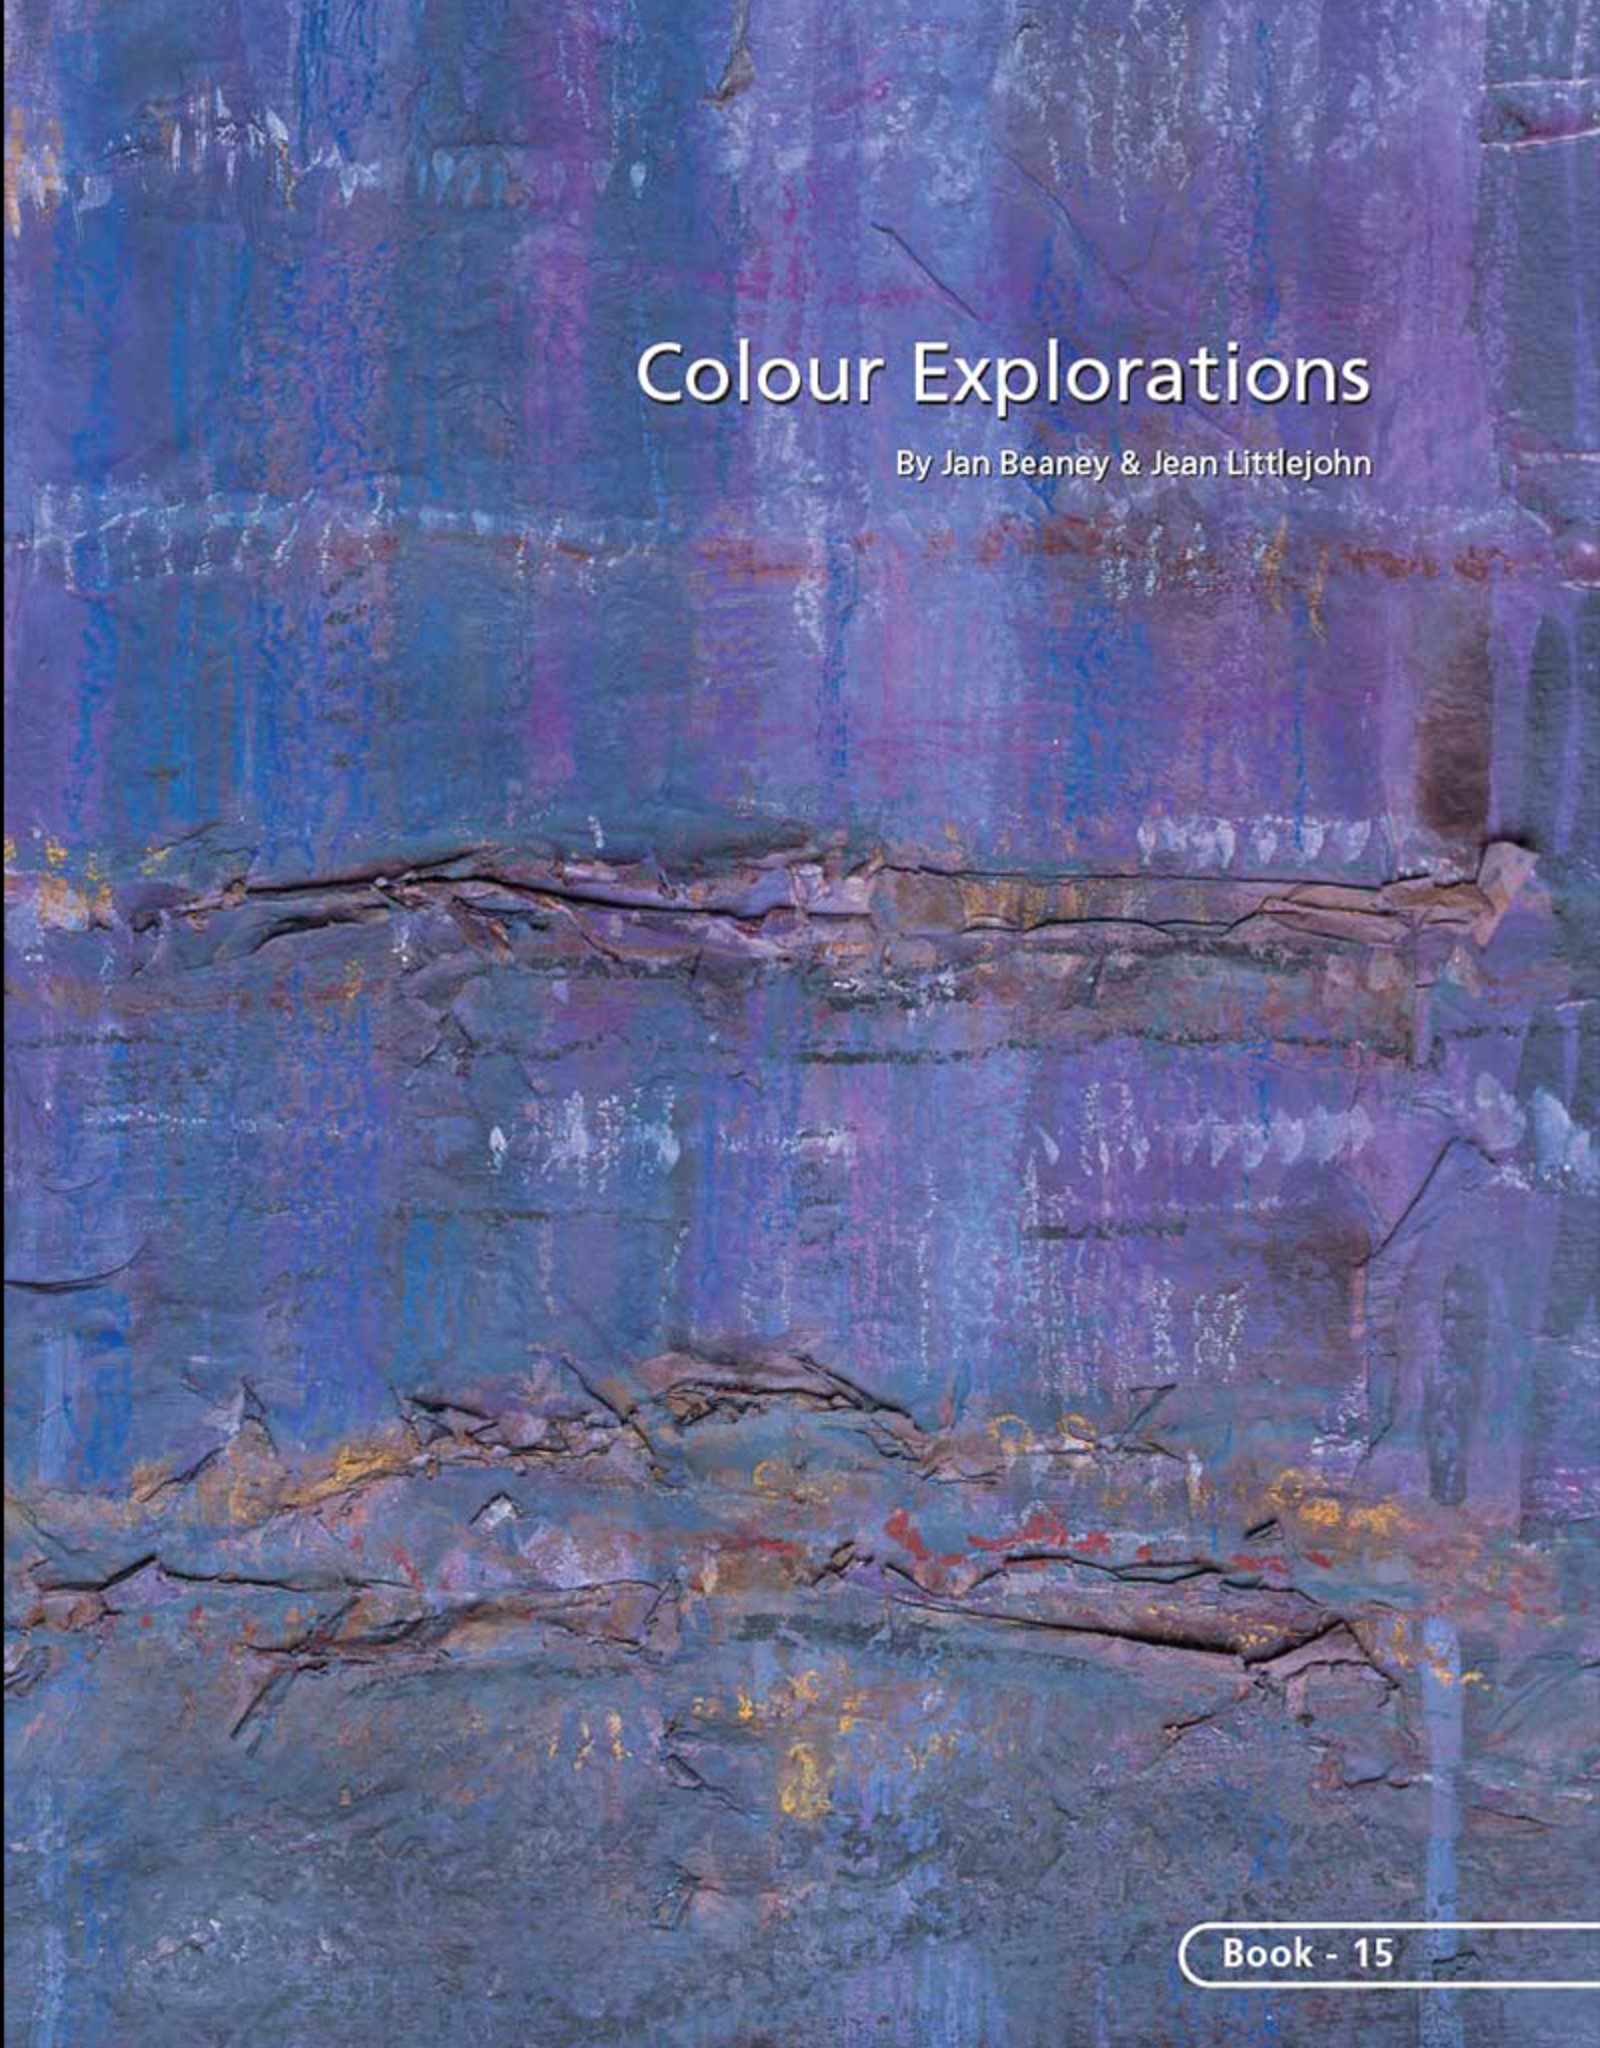 Colour Explorations / Jan Beaney & Jean Littlejohn